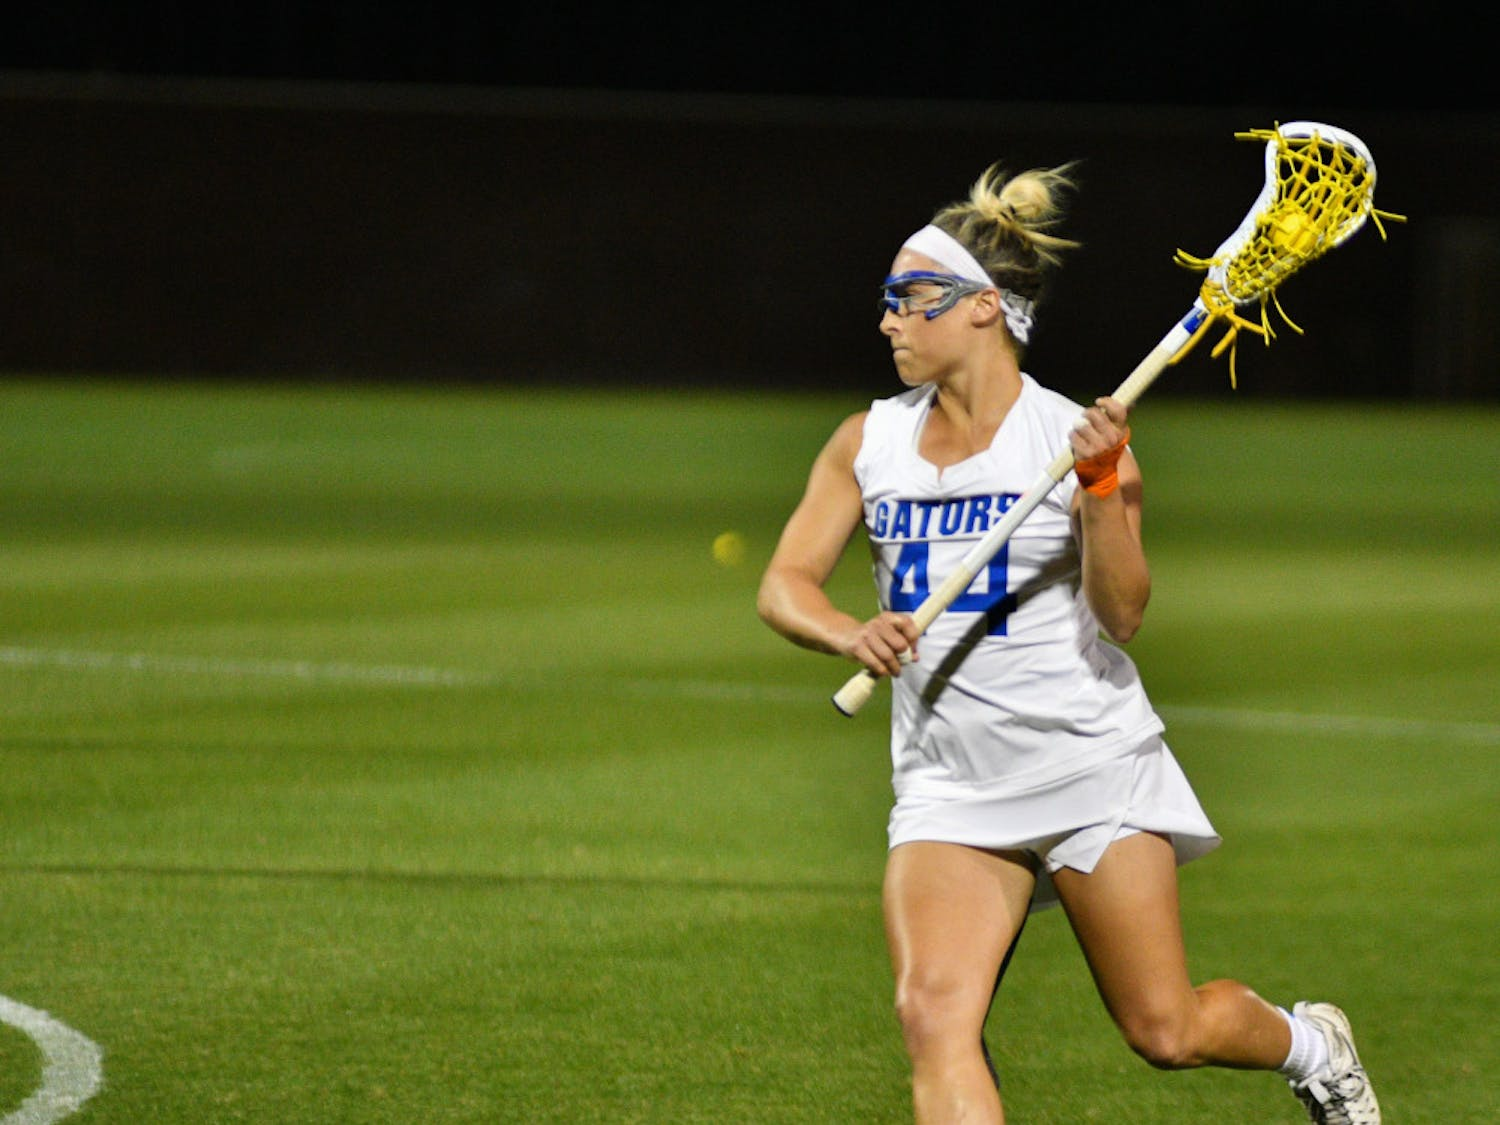 UF midfielder scored just one goal in Florida's 14-13 loss to Navy in Annapolis, Maryland, on Saturday.